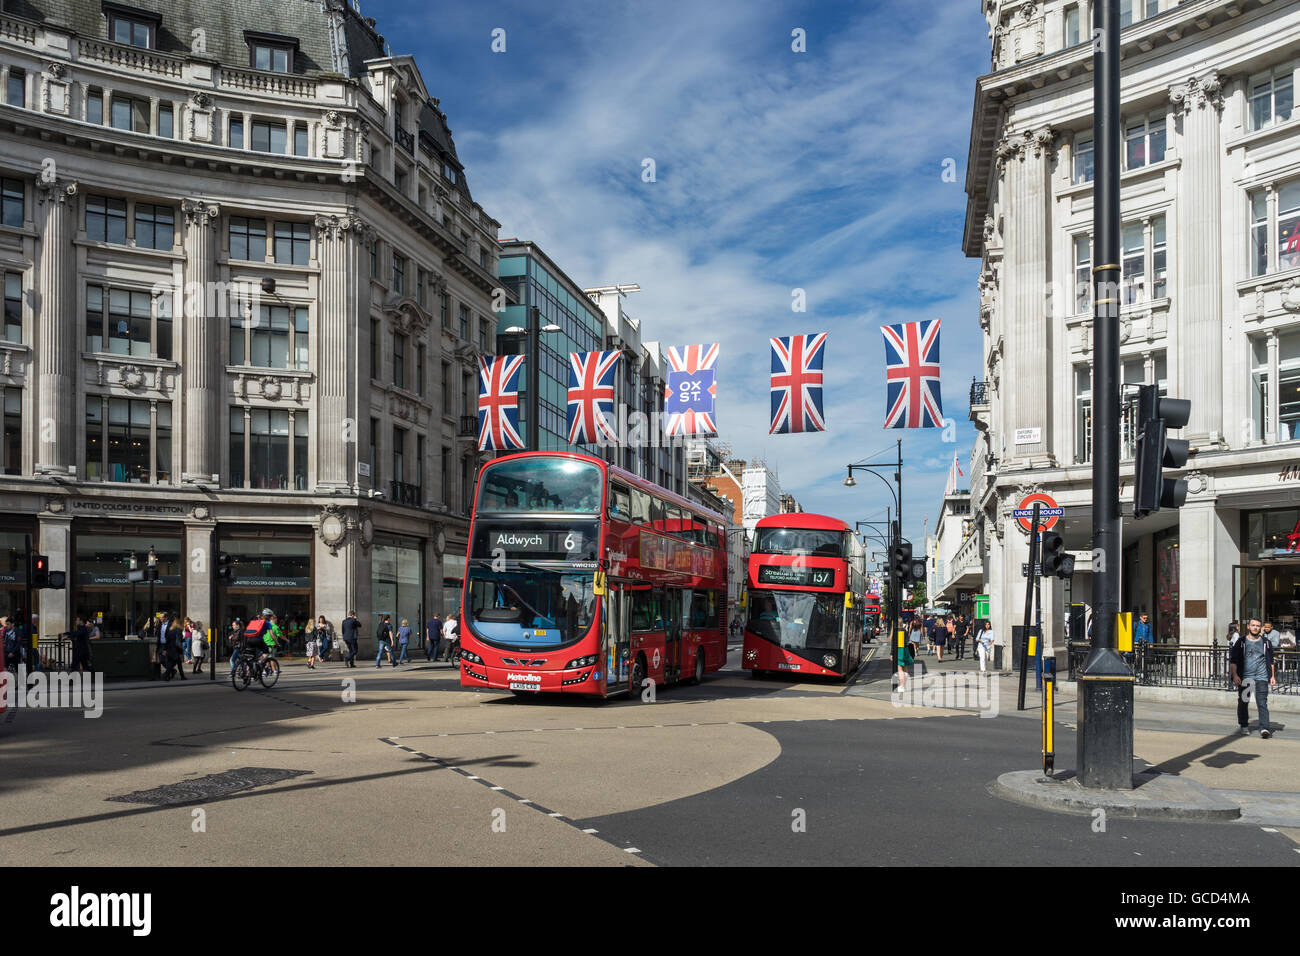 London Red Buses traveling along Oxford Street outdoors on a bright sunny day in City with commuters and traffic - Stock Image